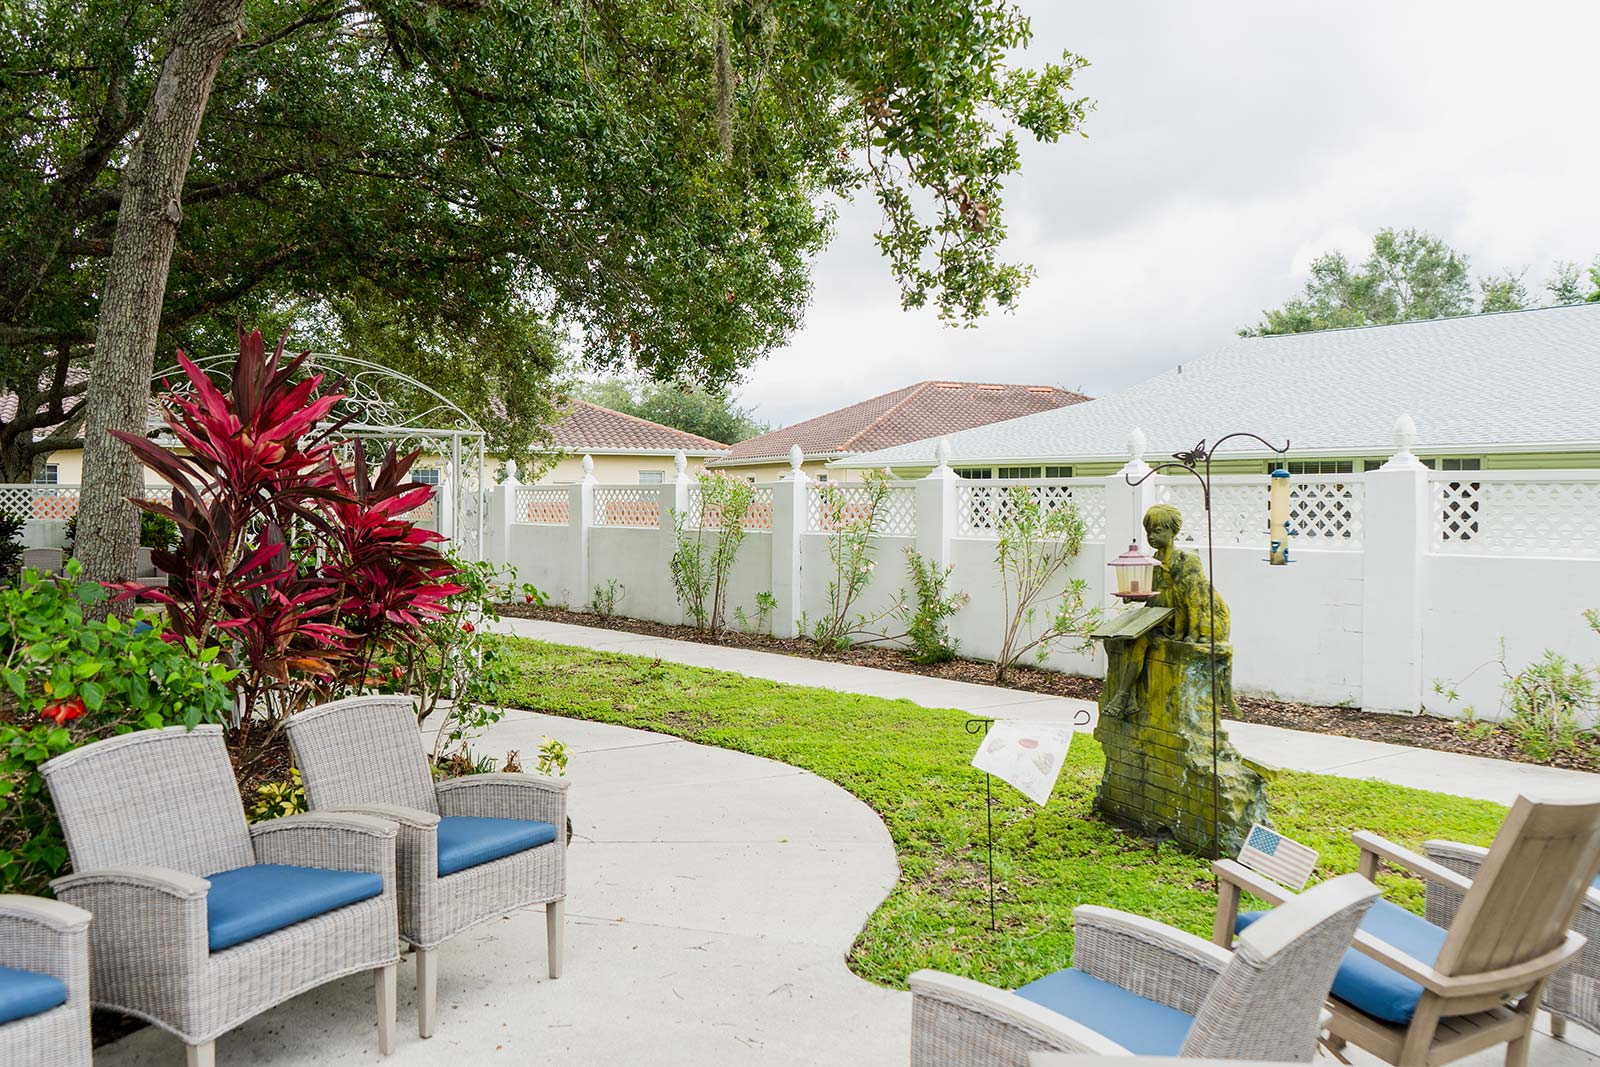 Outdoor courtyard at Heron House assisted living and memory care community in Sarasota, FL